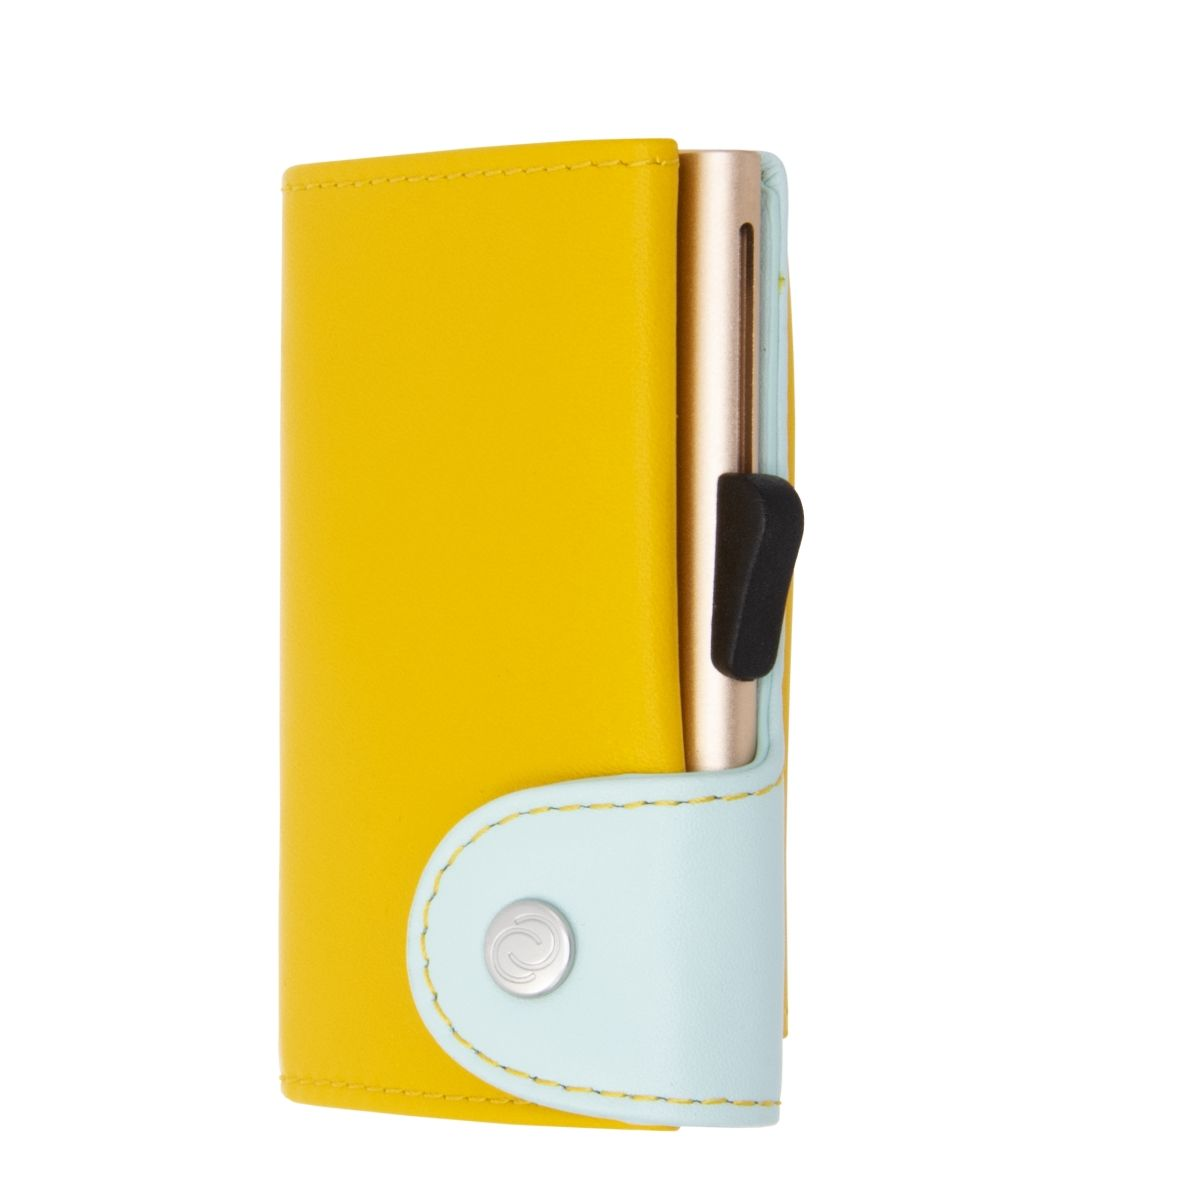 C-Secure Aluminum Card Holder with Genuine Leather and Coin Pouch - Saffron/Aqua